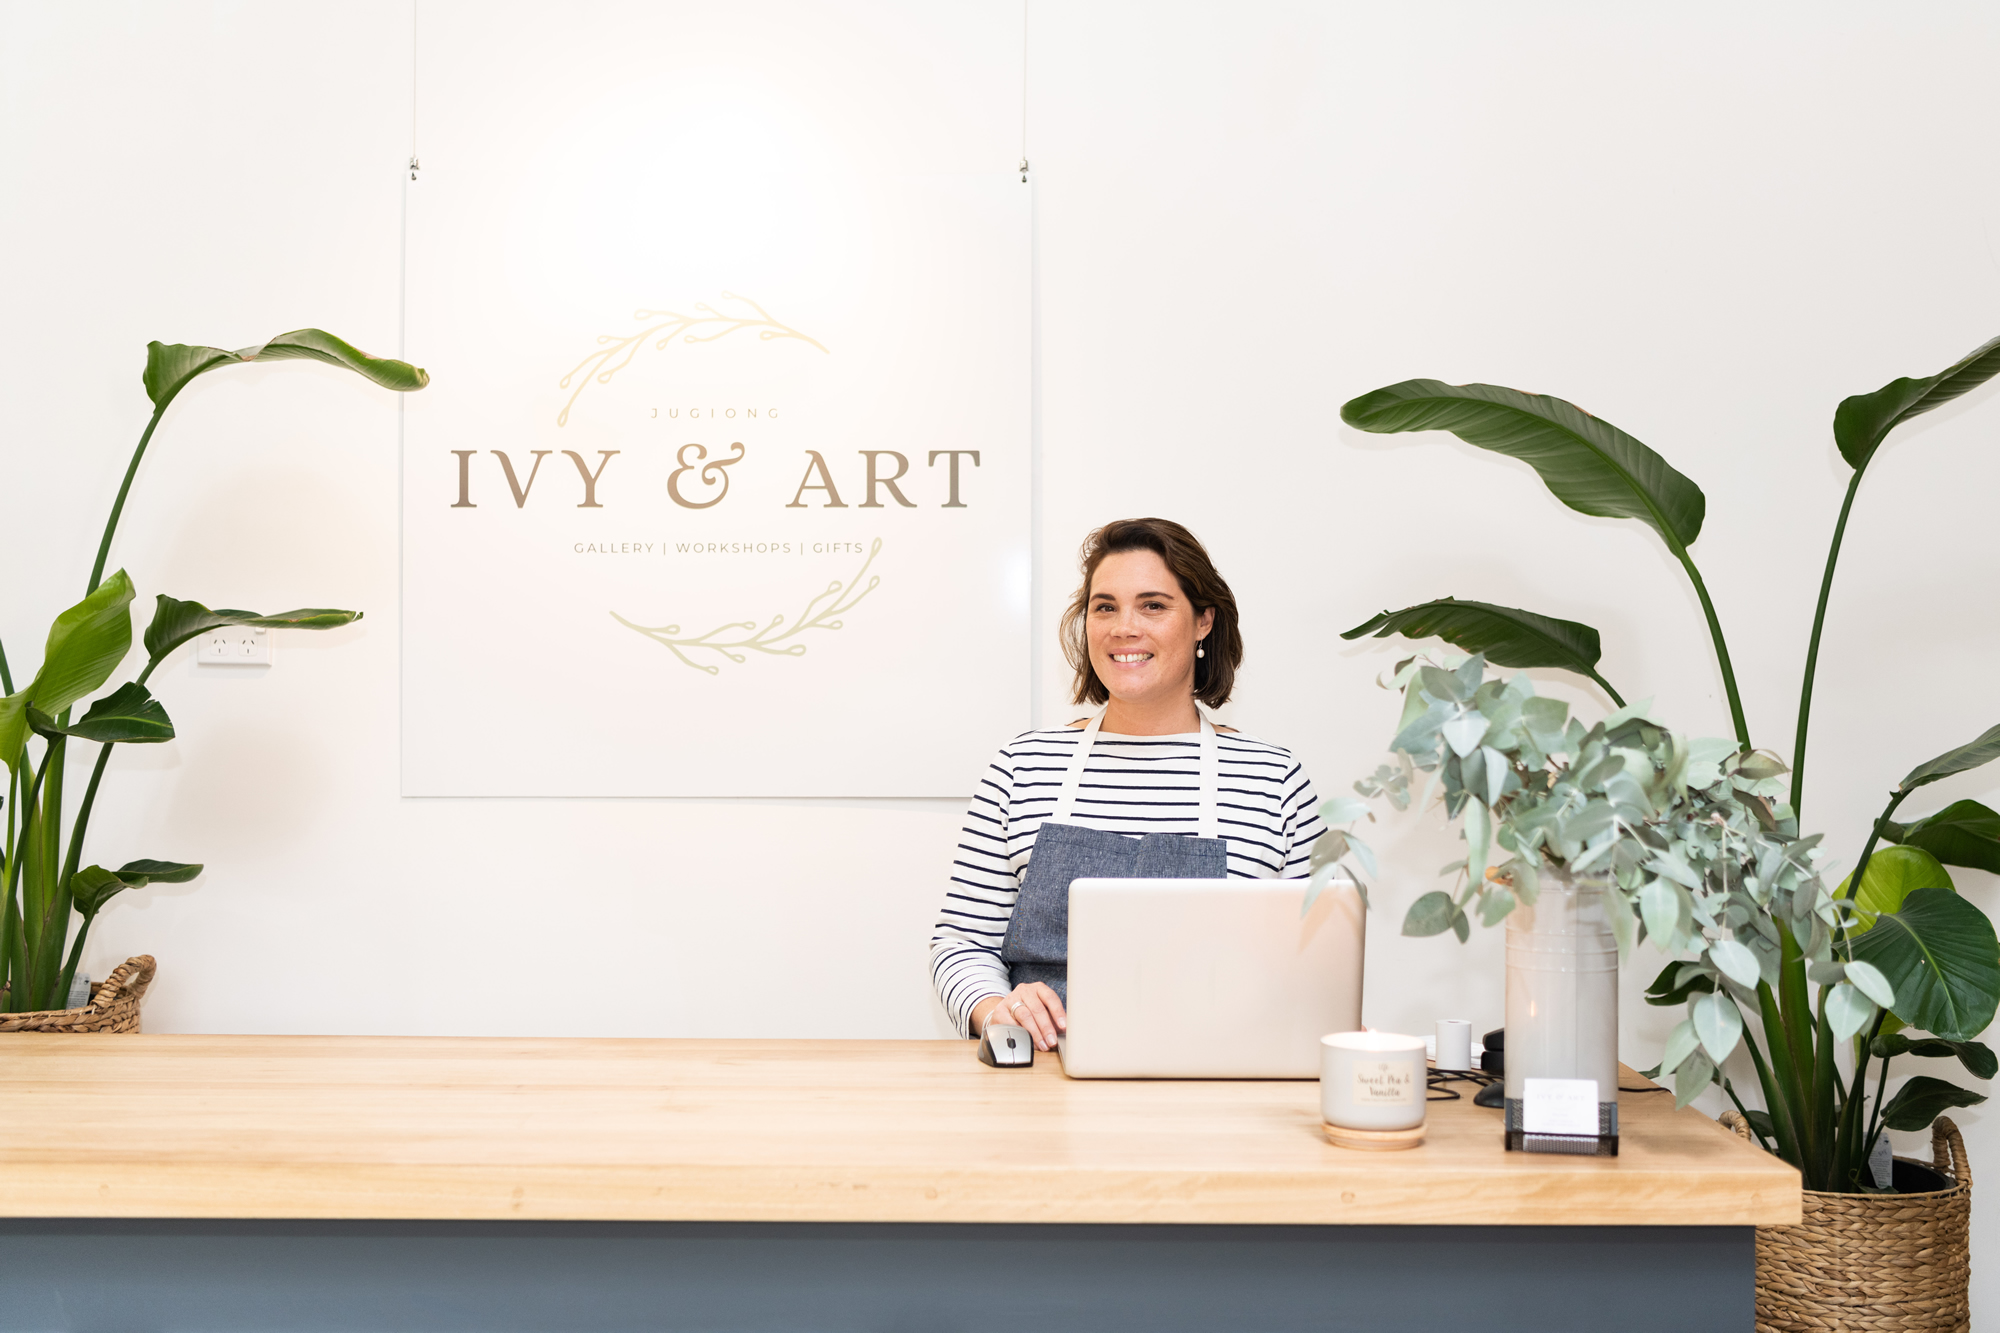 amy-counter-ivy-and-art-store-jugiong.jpg